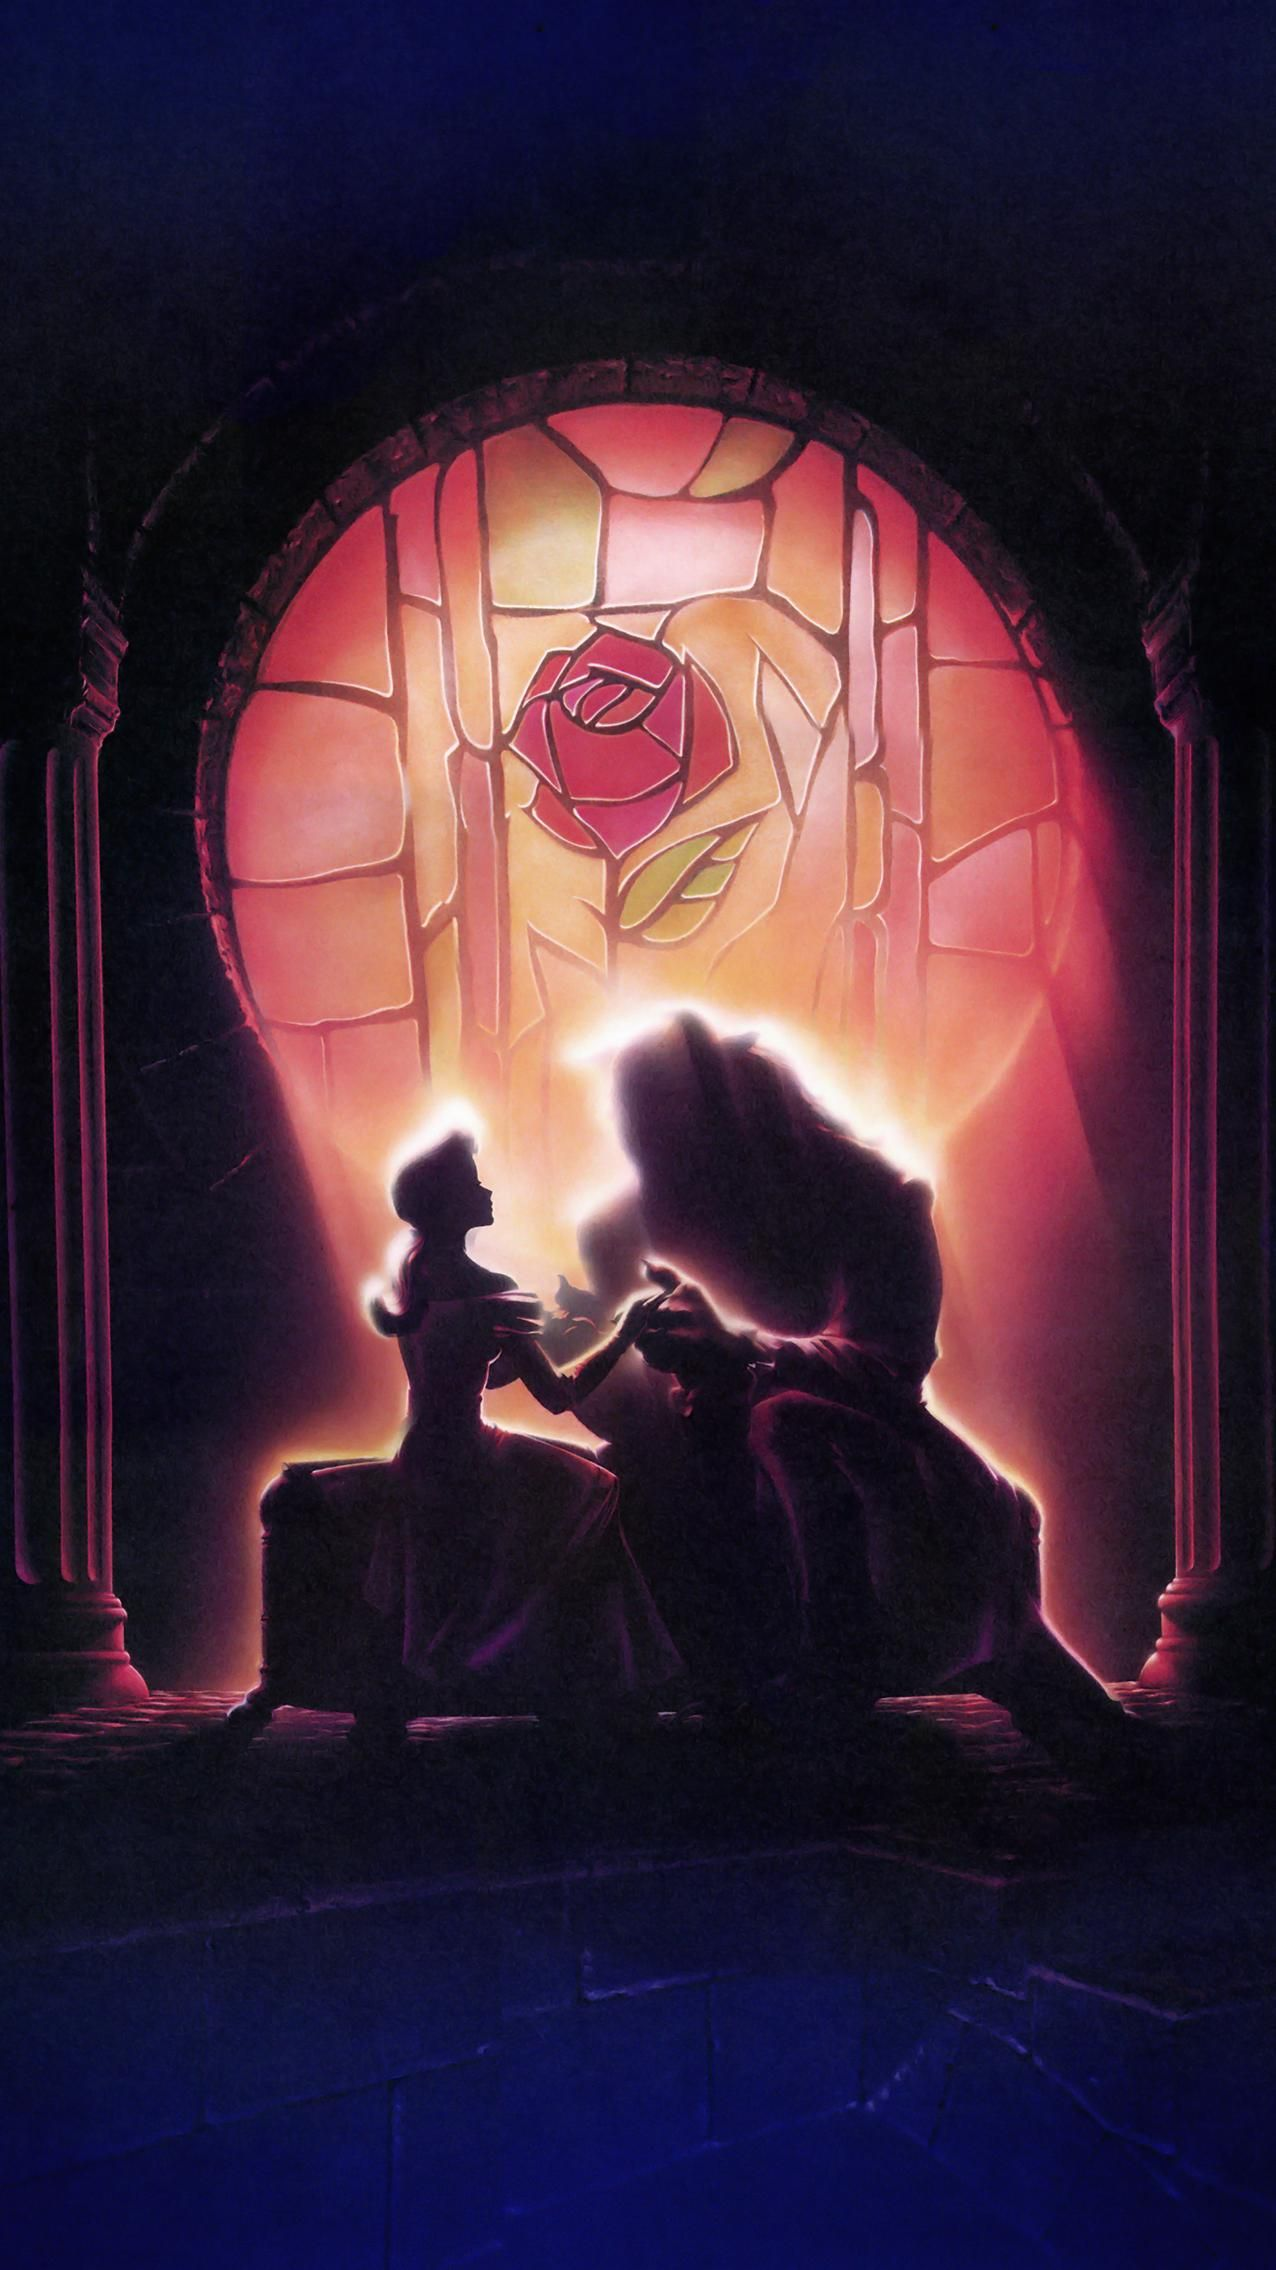 Beauty And The Beast 1991 Phone Wallpaper In 2020 Disney Movie